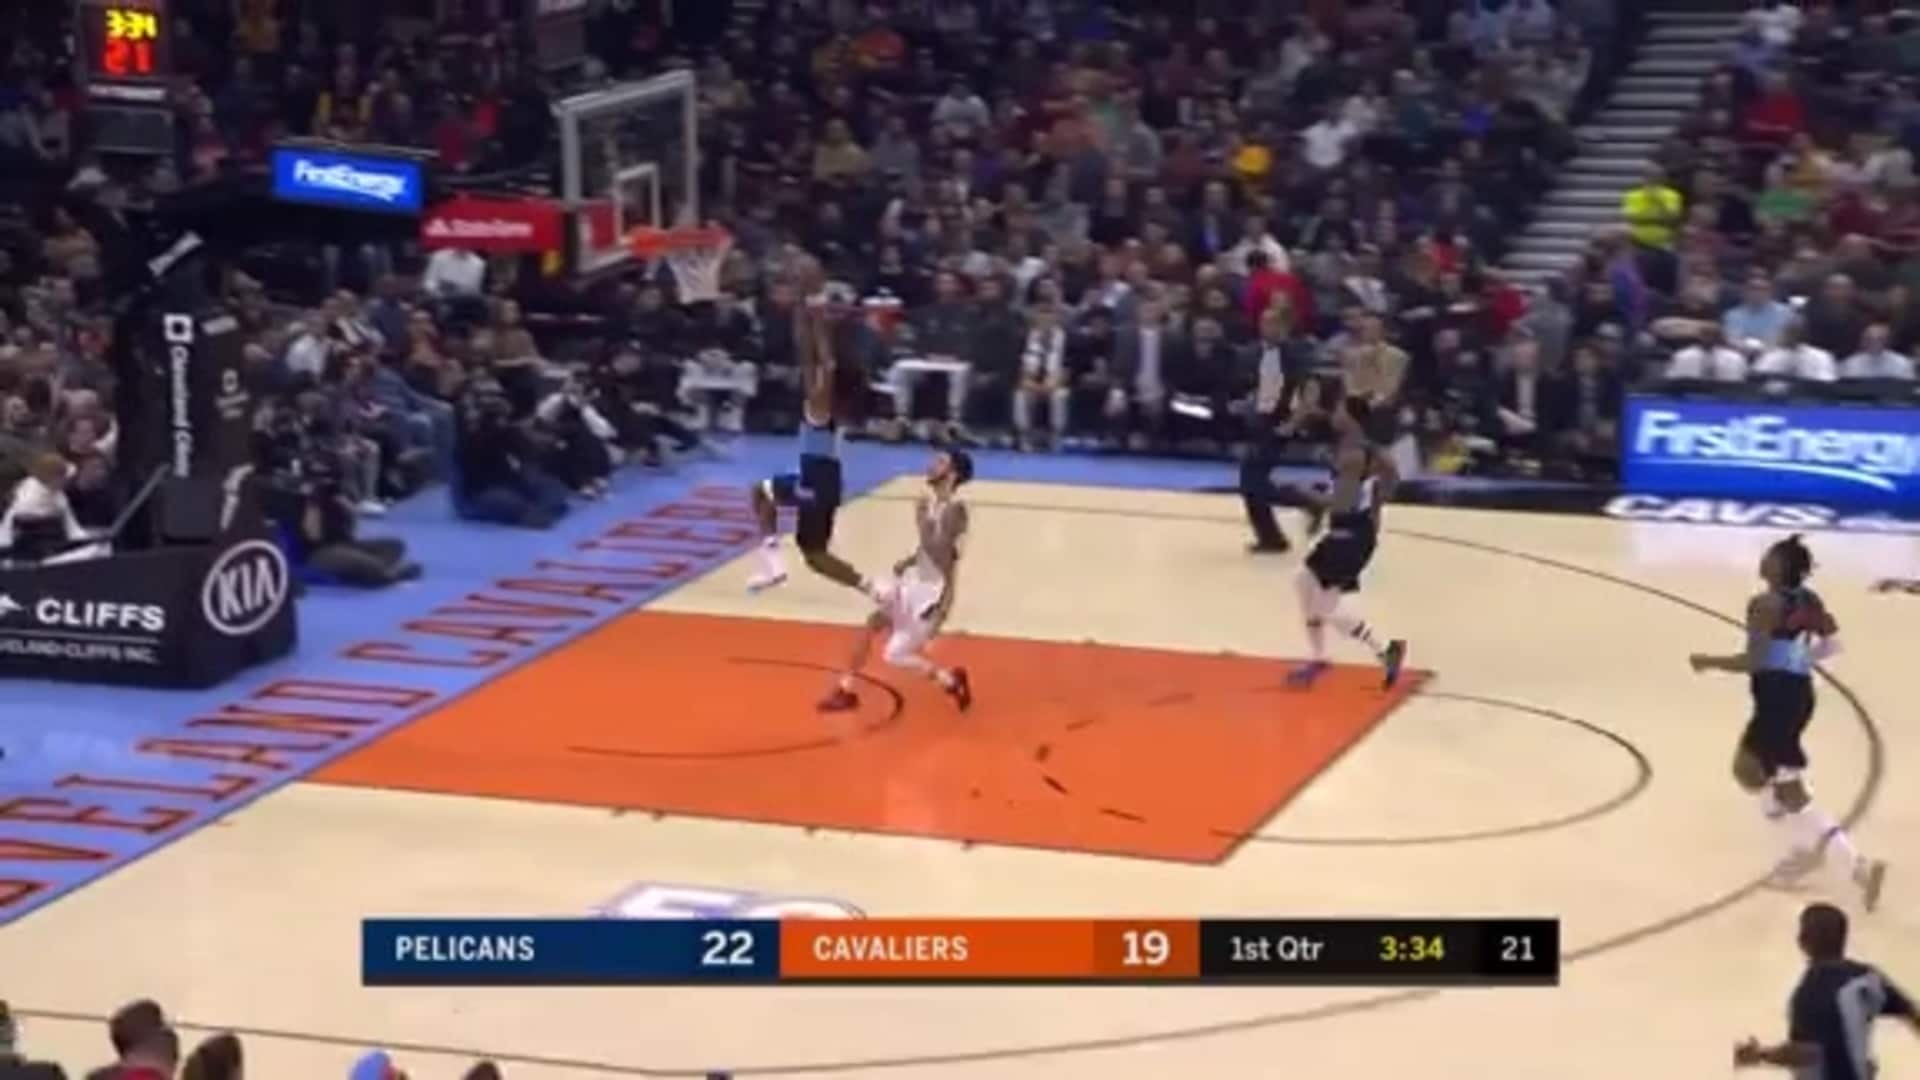 Cavs Defense Forces a Steal, Sexton Throws Down Dunk on Other End